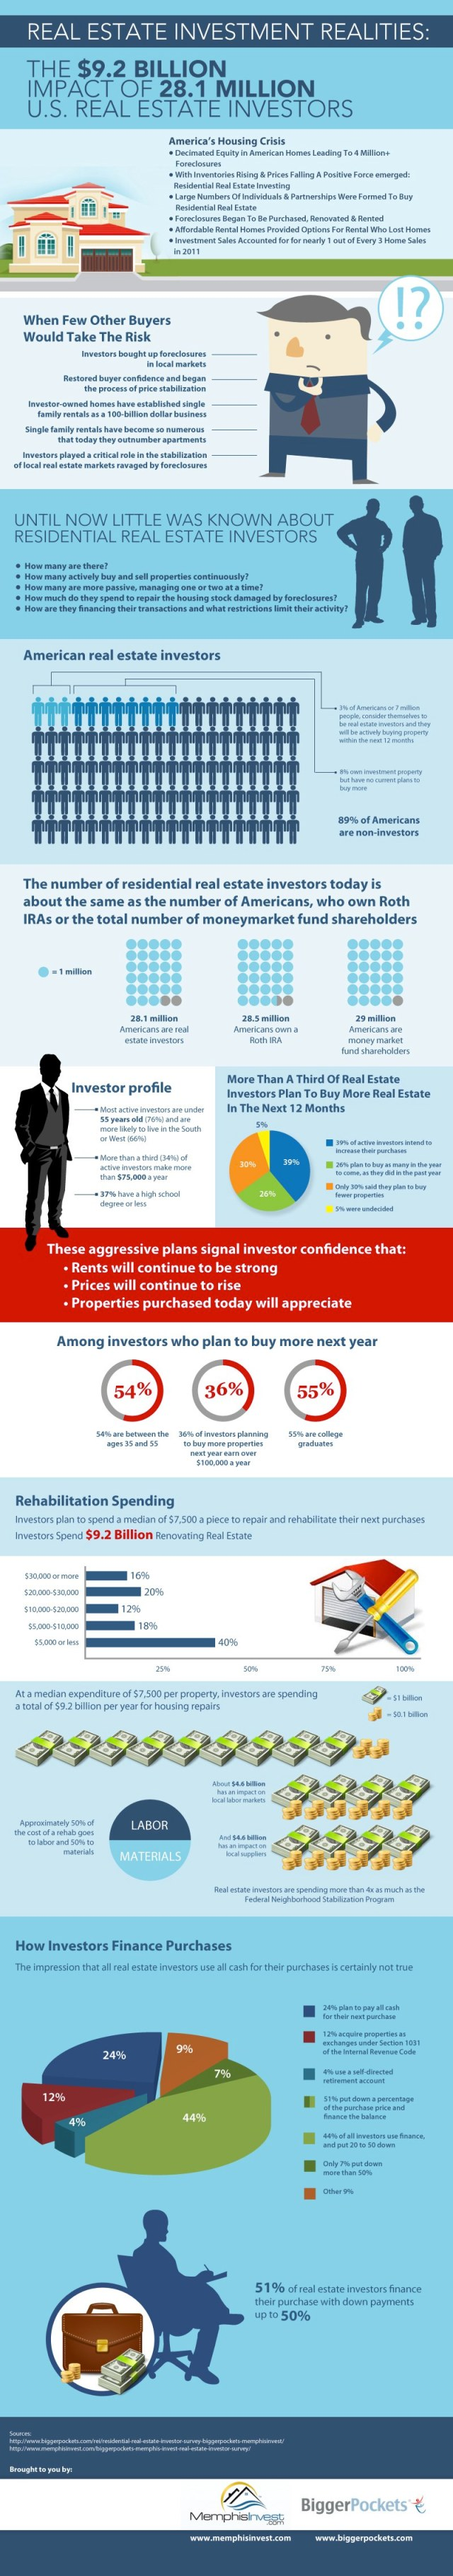 Real Estate Investment Realities